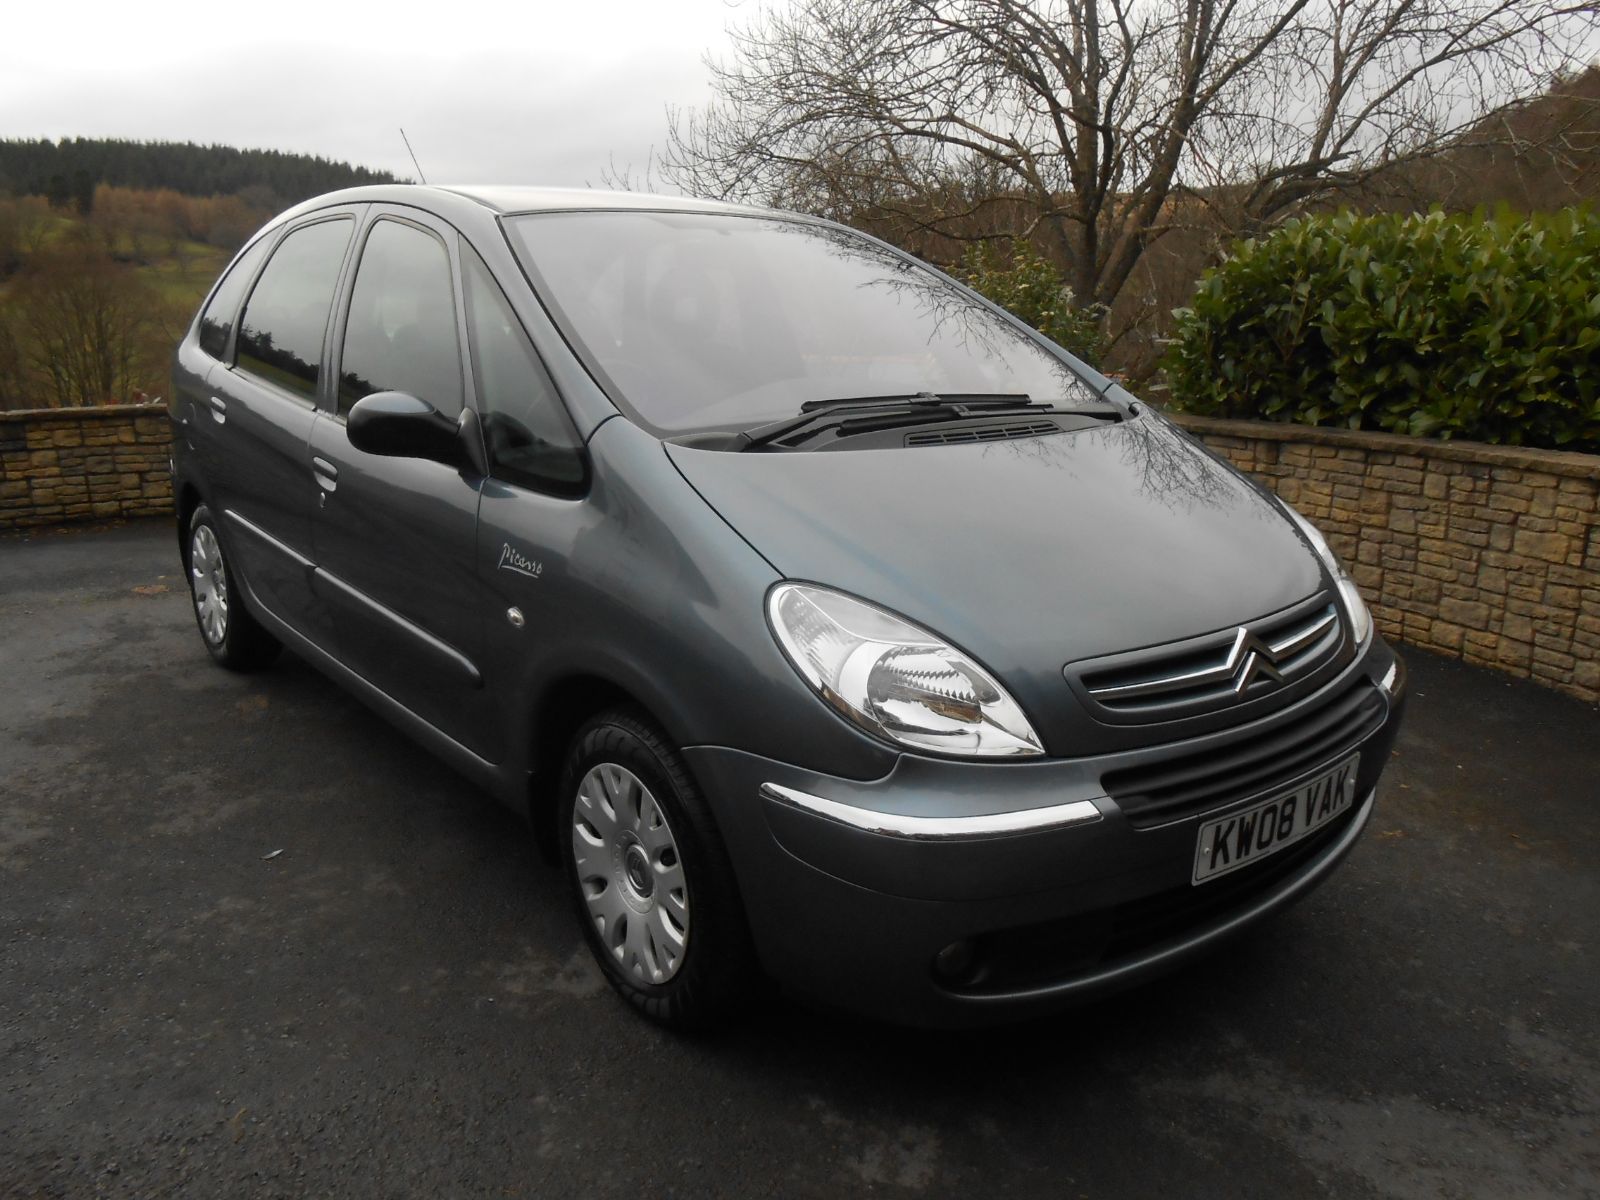 citroen xsara picasso 1 6 hdi desire car for sale. Black Bedroom Furniture Sets. Home Design Ideas